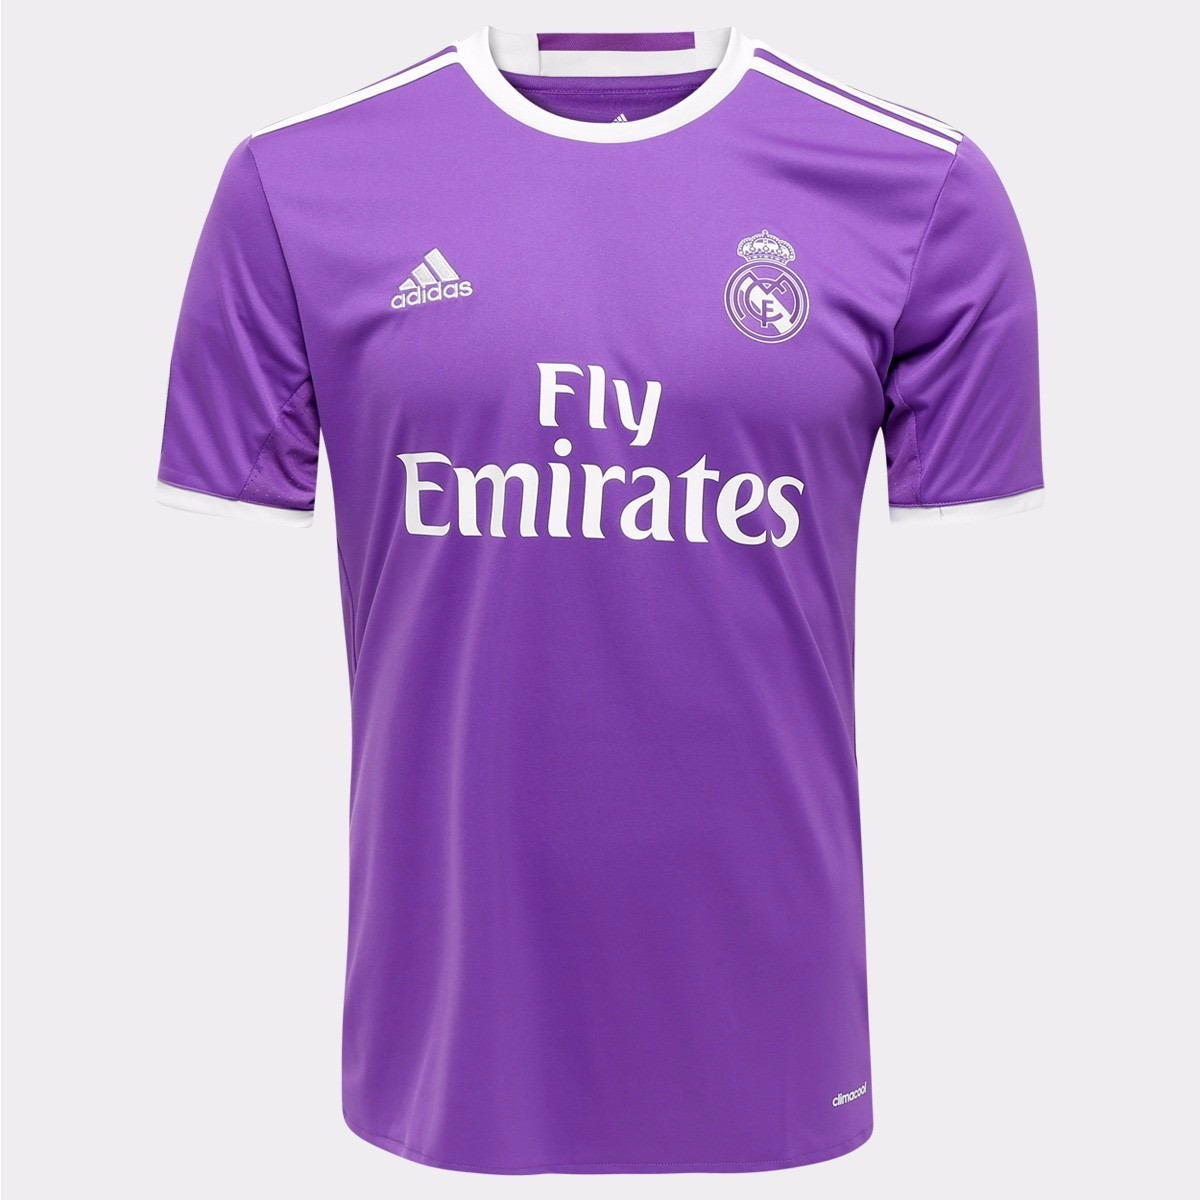 8877a0cd8e camiseta real madrid ii climacool - lilás branca - original. Carregando zoom .